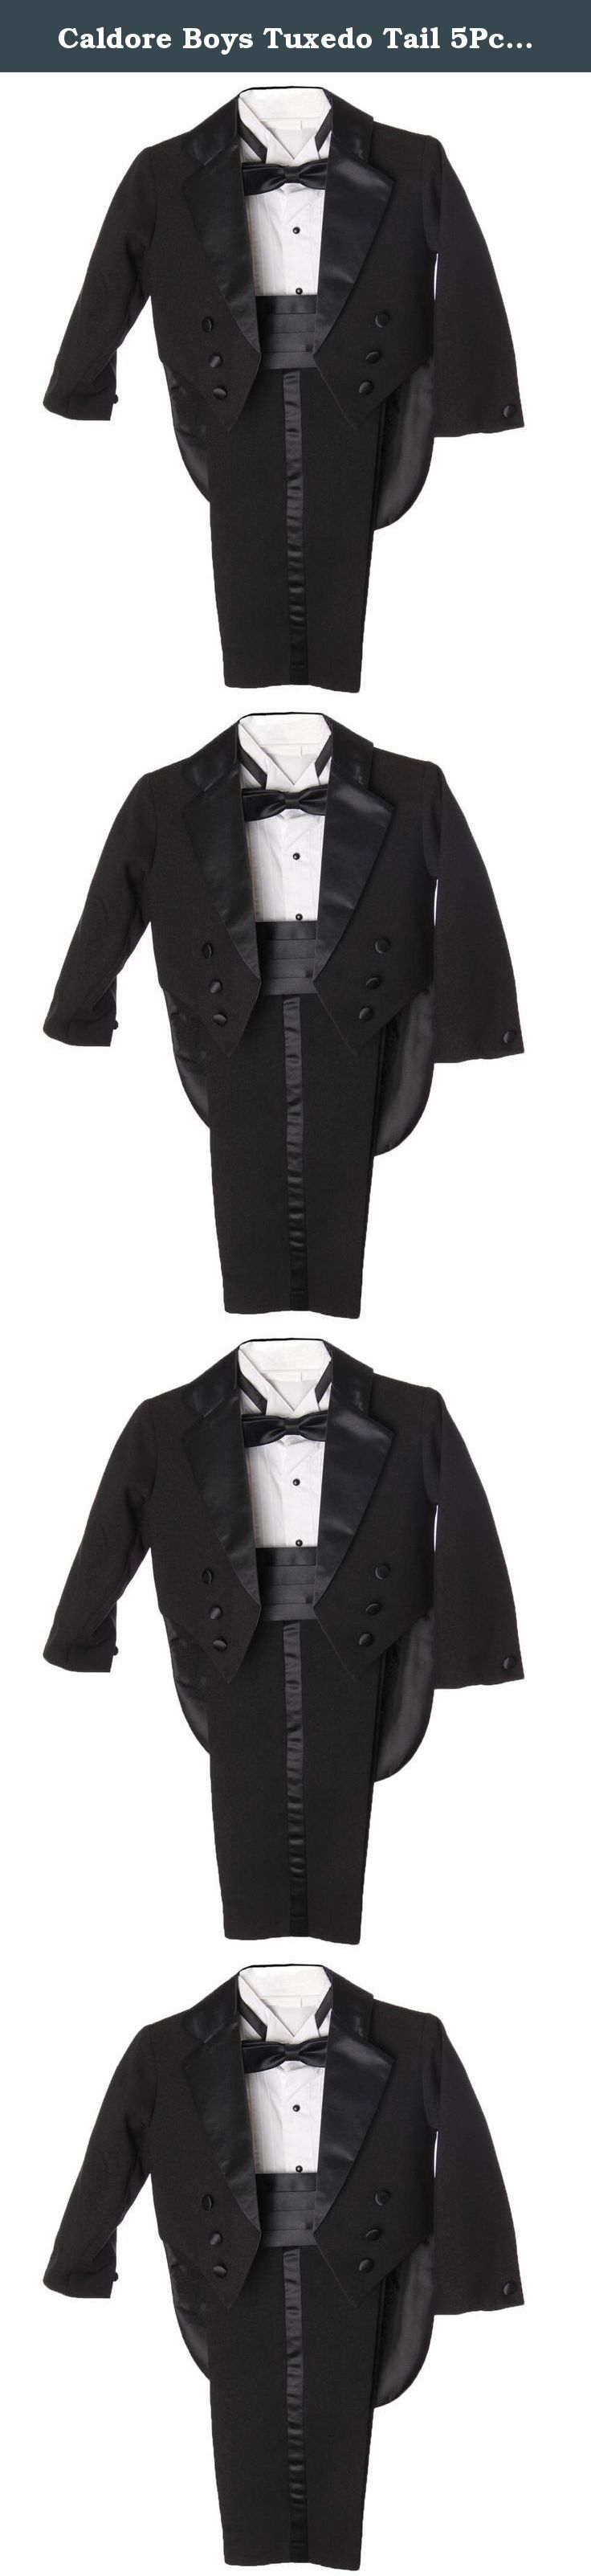 Caldore Boys Tuxedo Tail 5Pc Set Tuxedo Suit Black Size 10. A perfect match for the adult version, this tuxedo features slacks with satin stripes, a bow tie and tiered waist cummerbund, long sleeves and a buttoned shirt. The cherry on top: the penguin tuxedo coat with tails. Either in ivory, white, or black, your little one will look as though he were preparing for a photo shoot. Perfect for a marcher or for those timeless pictures.